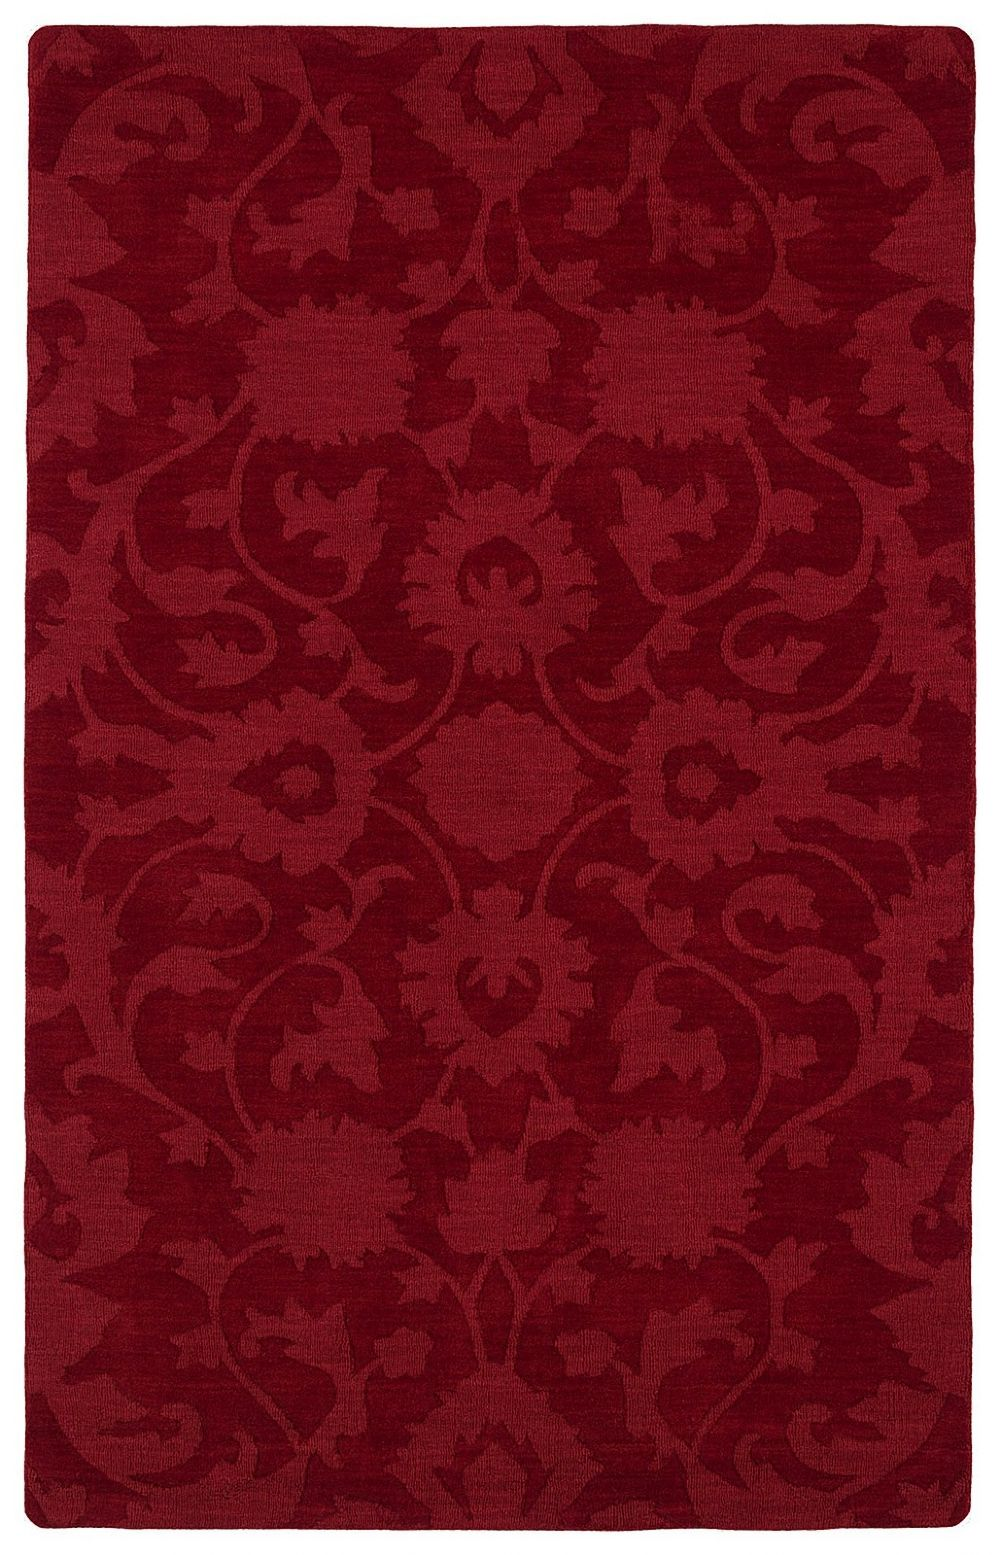 kaleen imprints classic transitional area rug collection